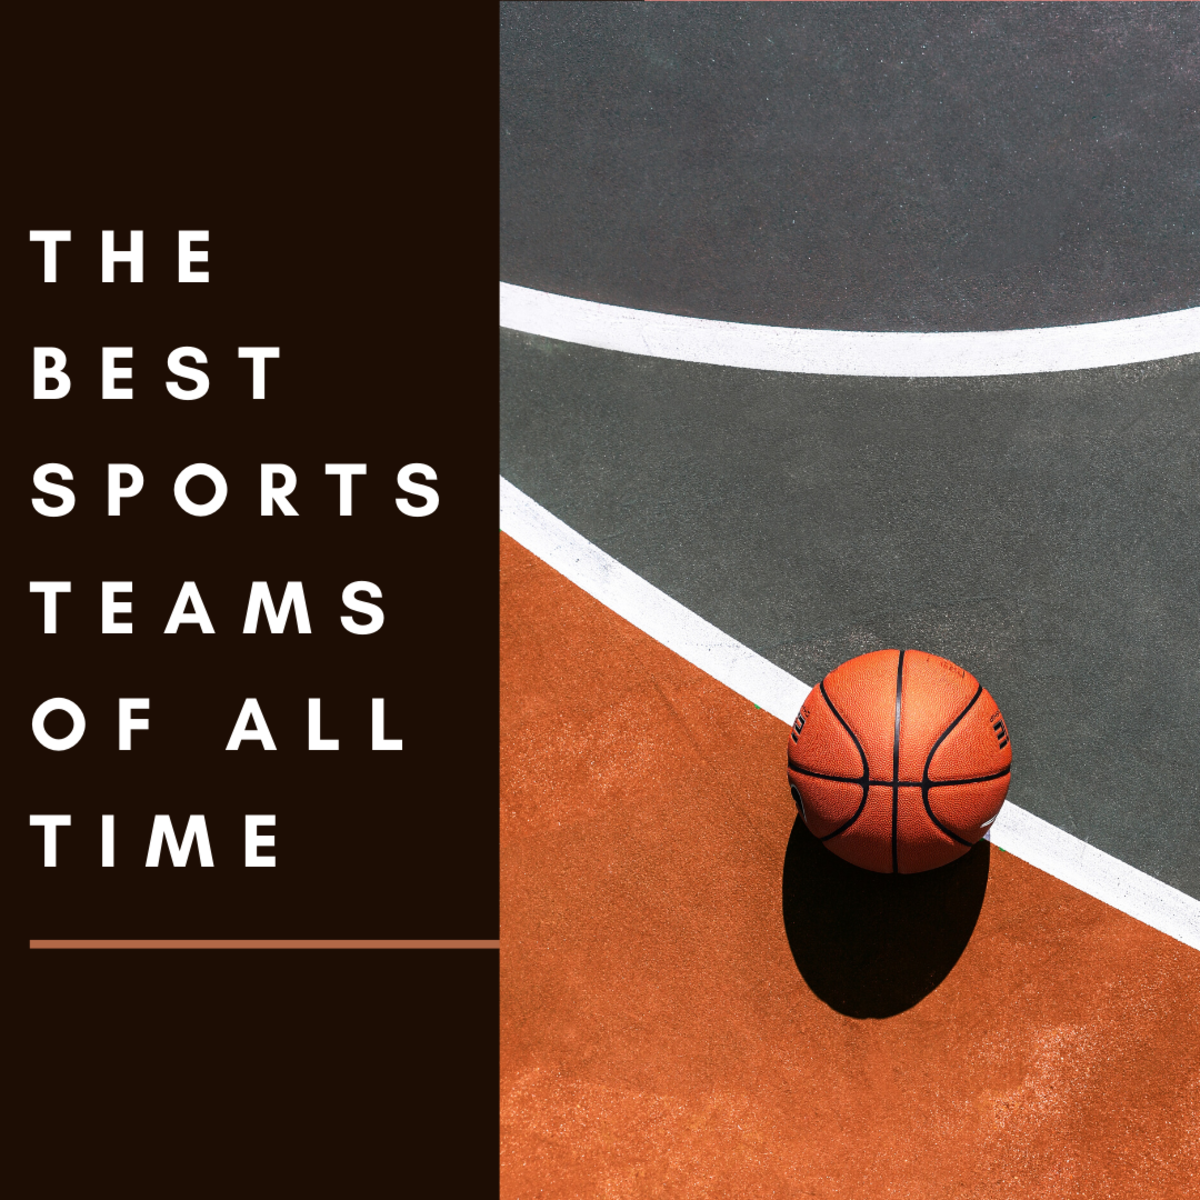 These sports teams were truly incredible.